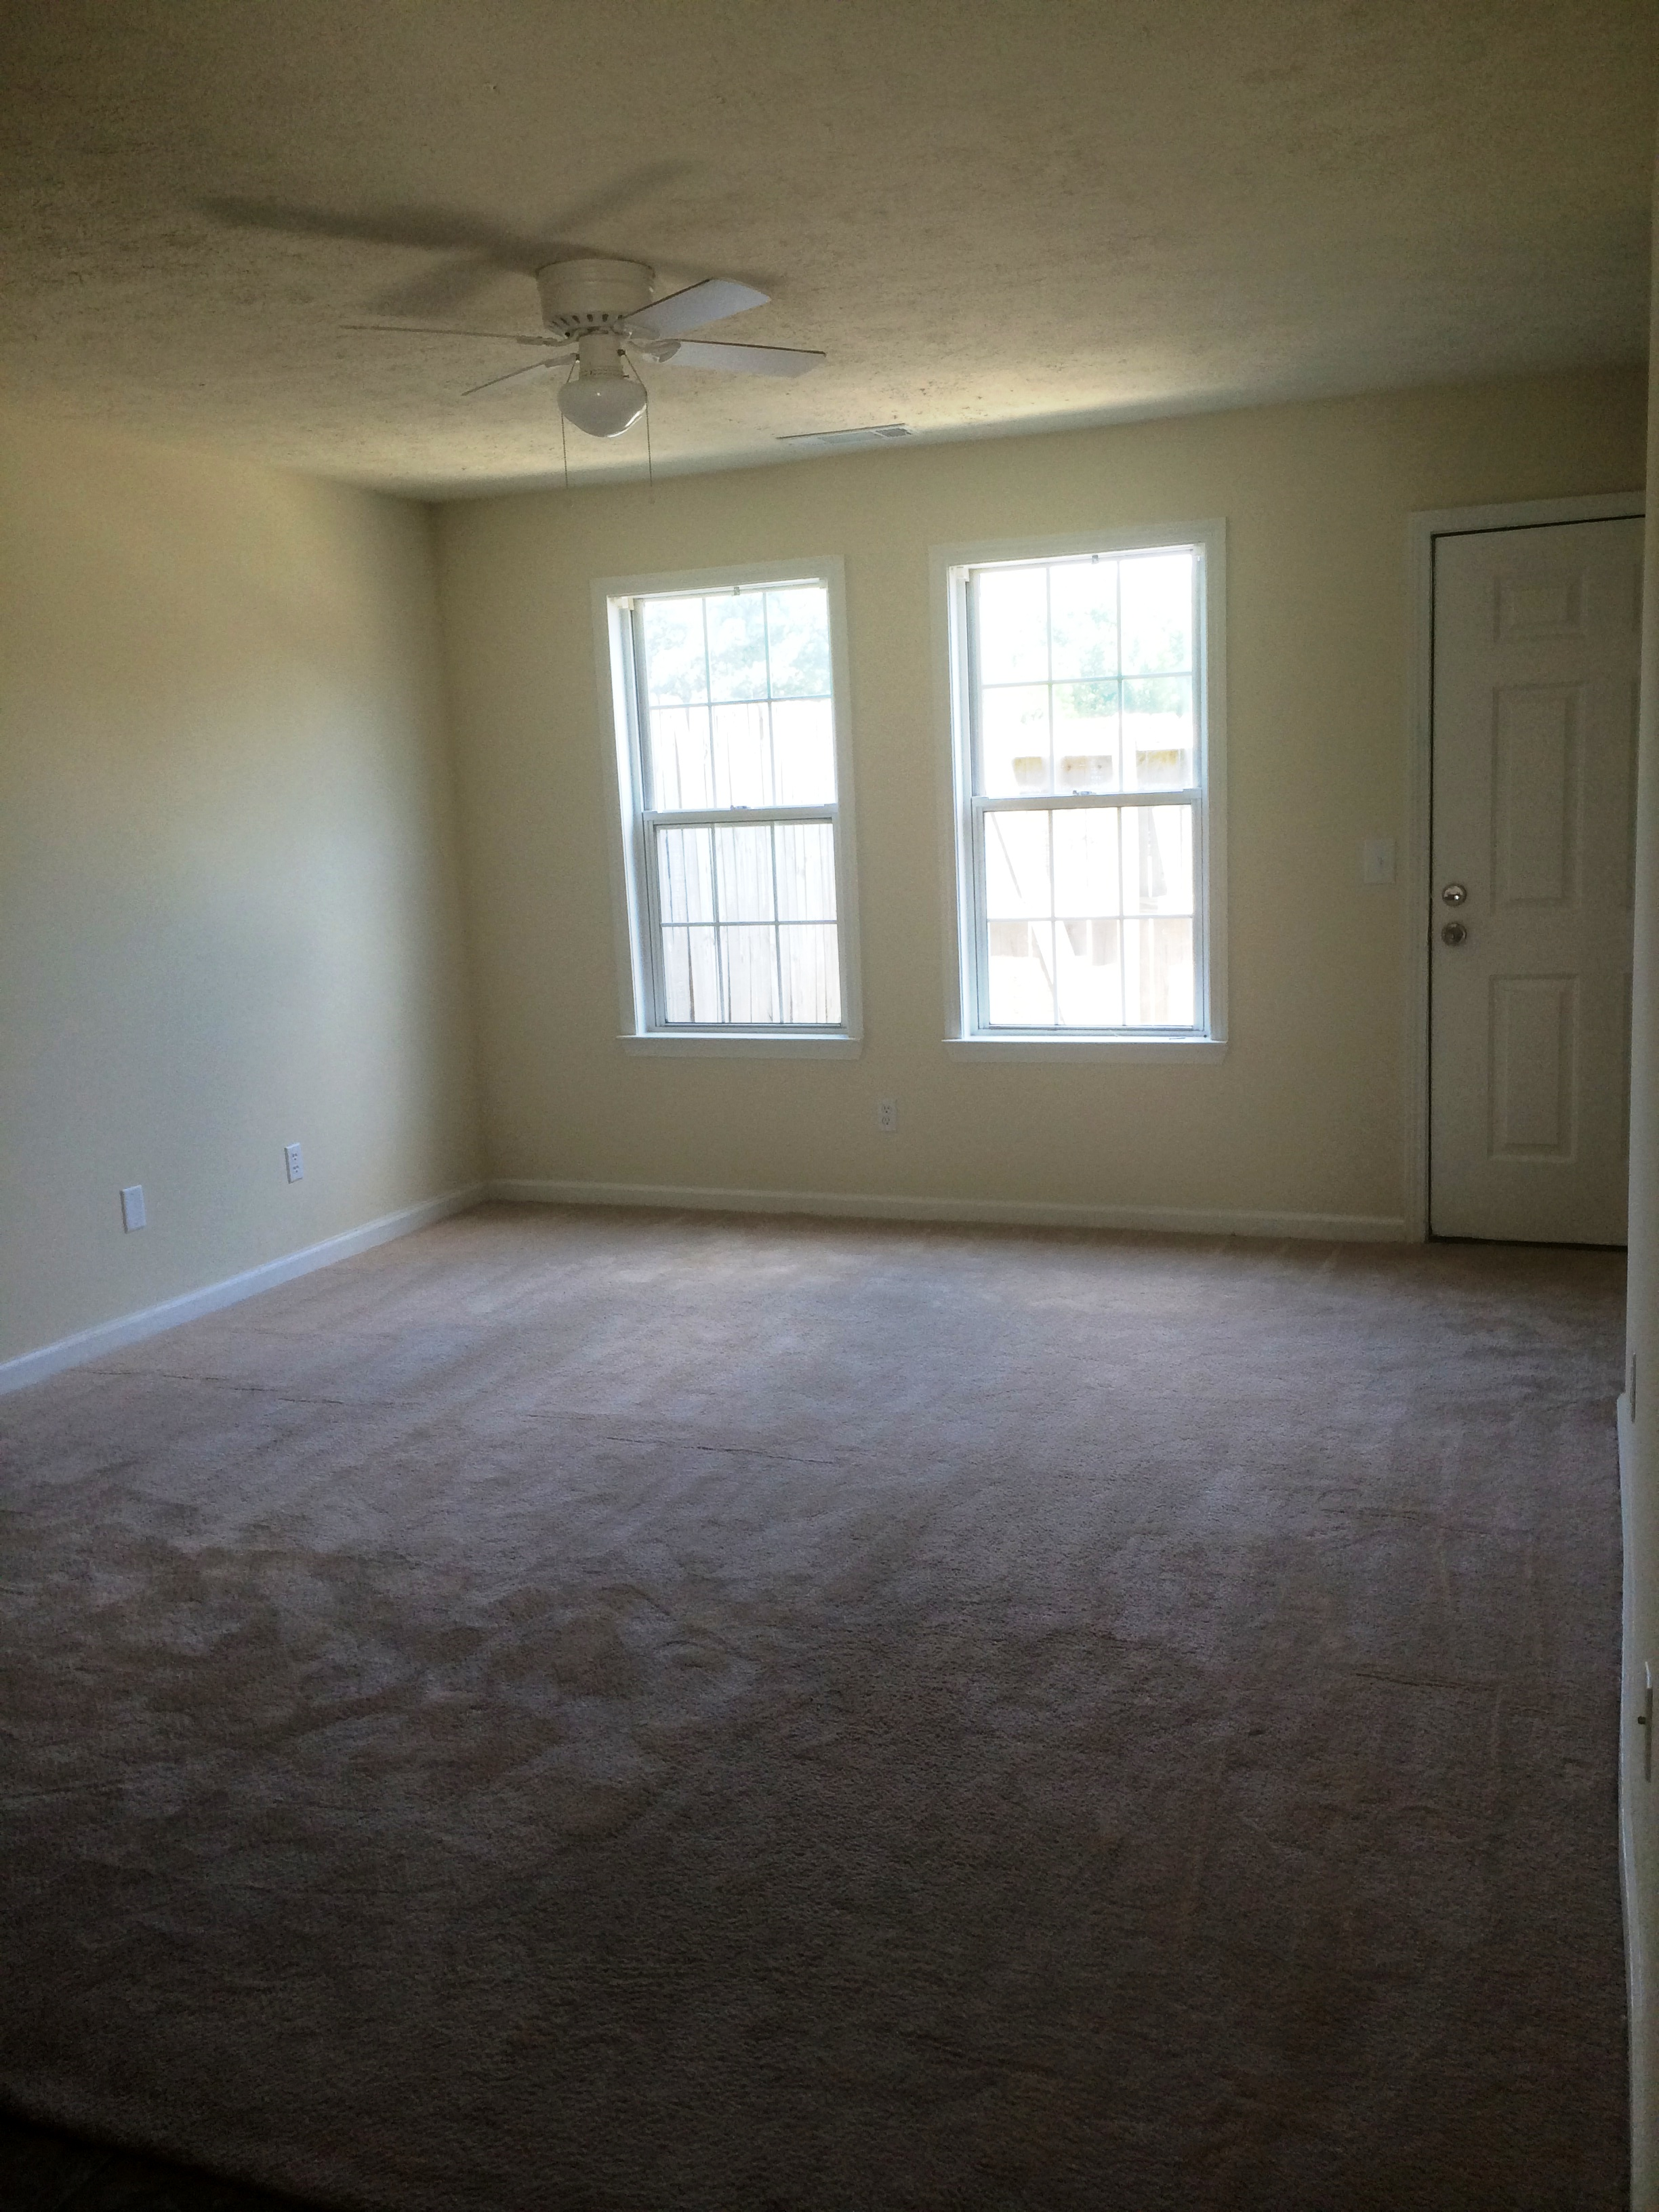 carpet living room.jpg